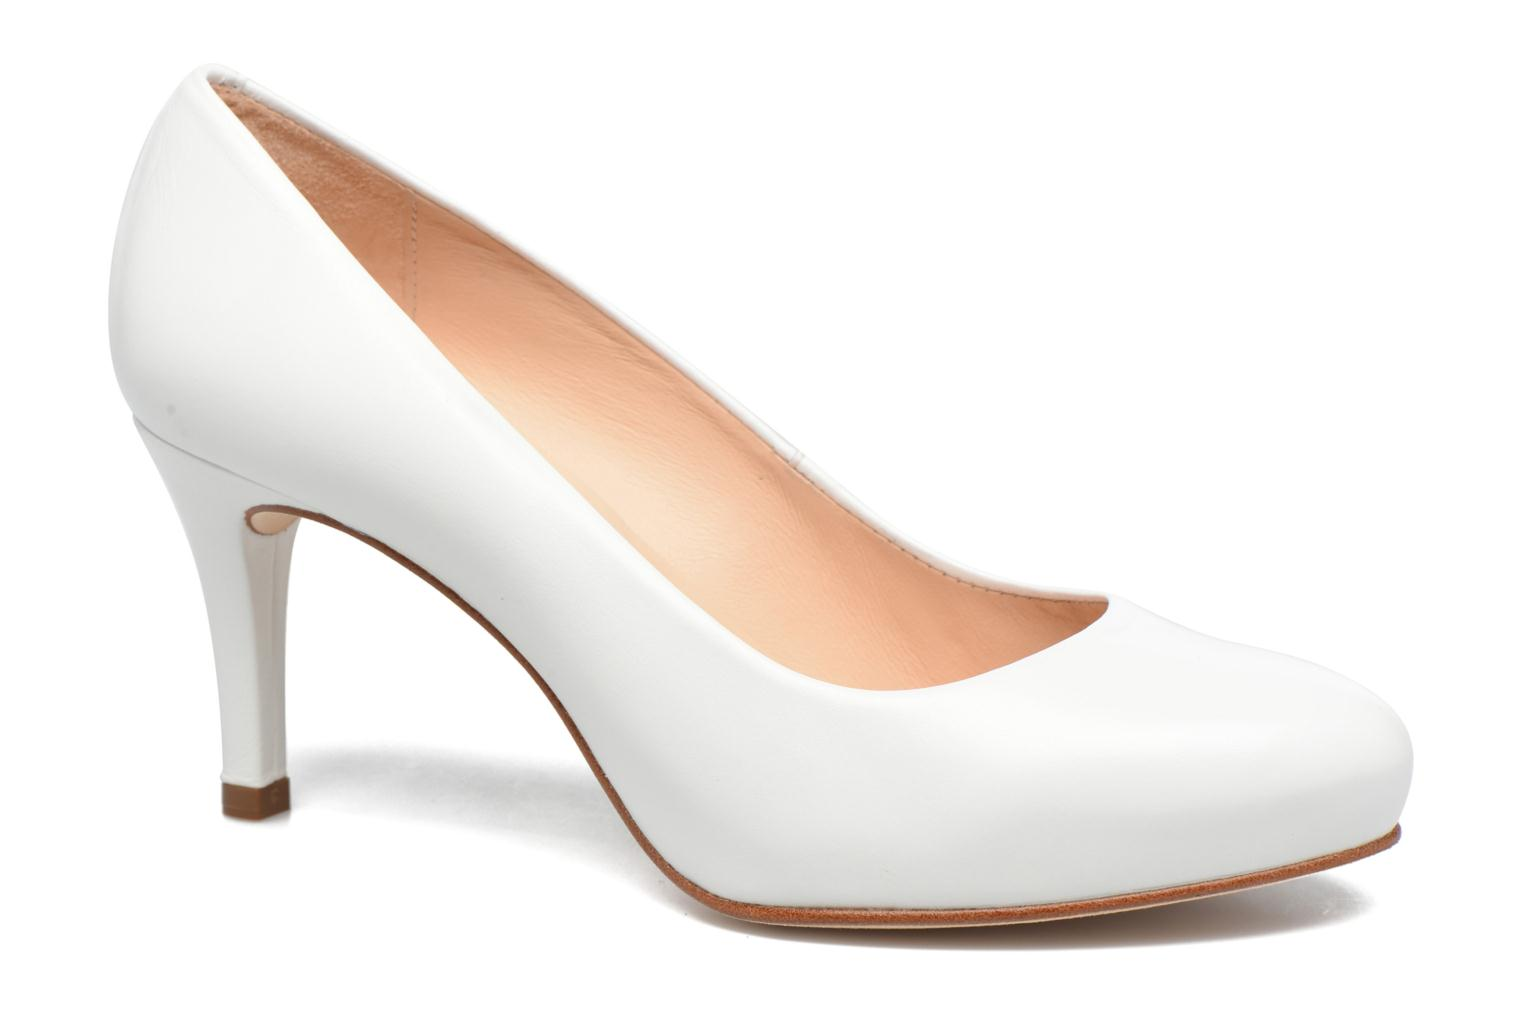 Marques Chaussure femme Unisa femme Nade Napa Silk White